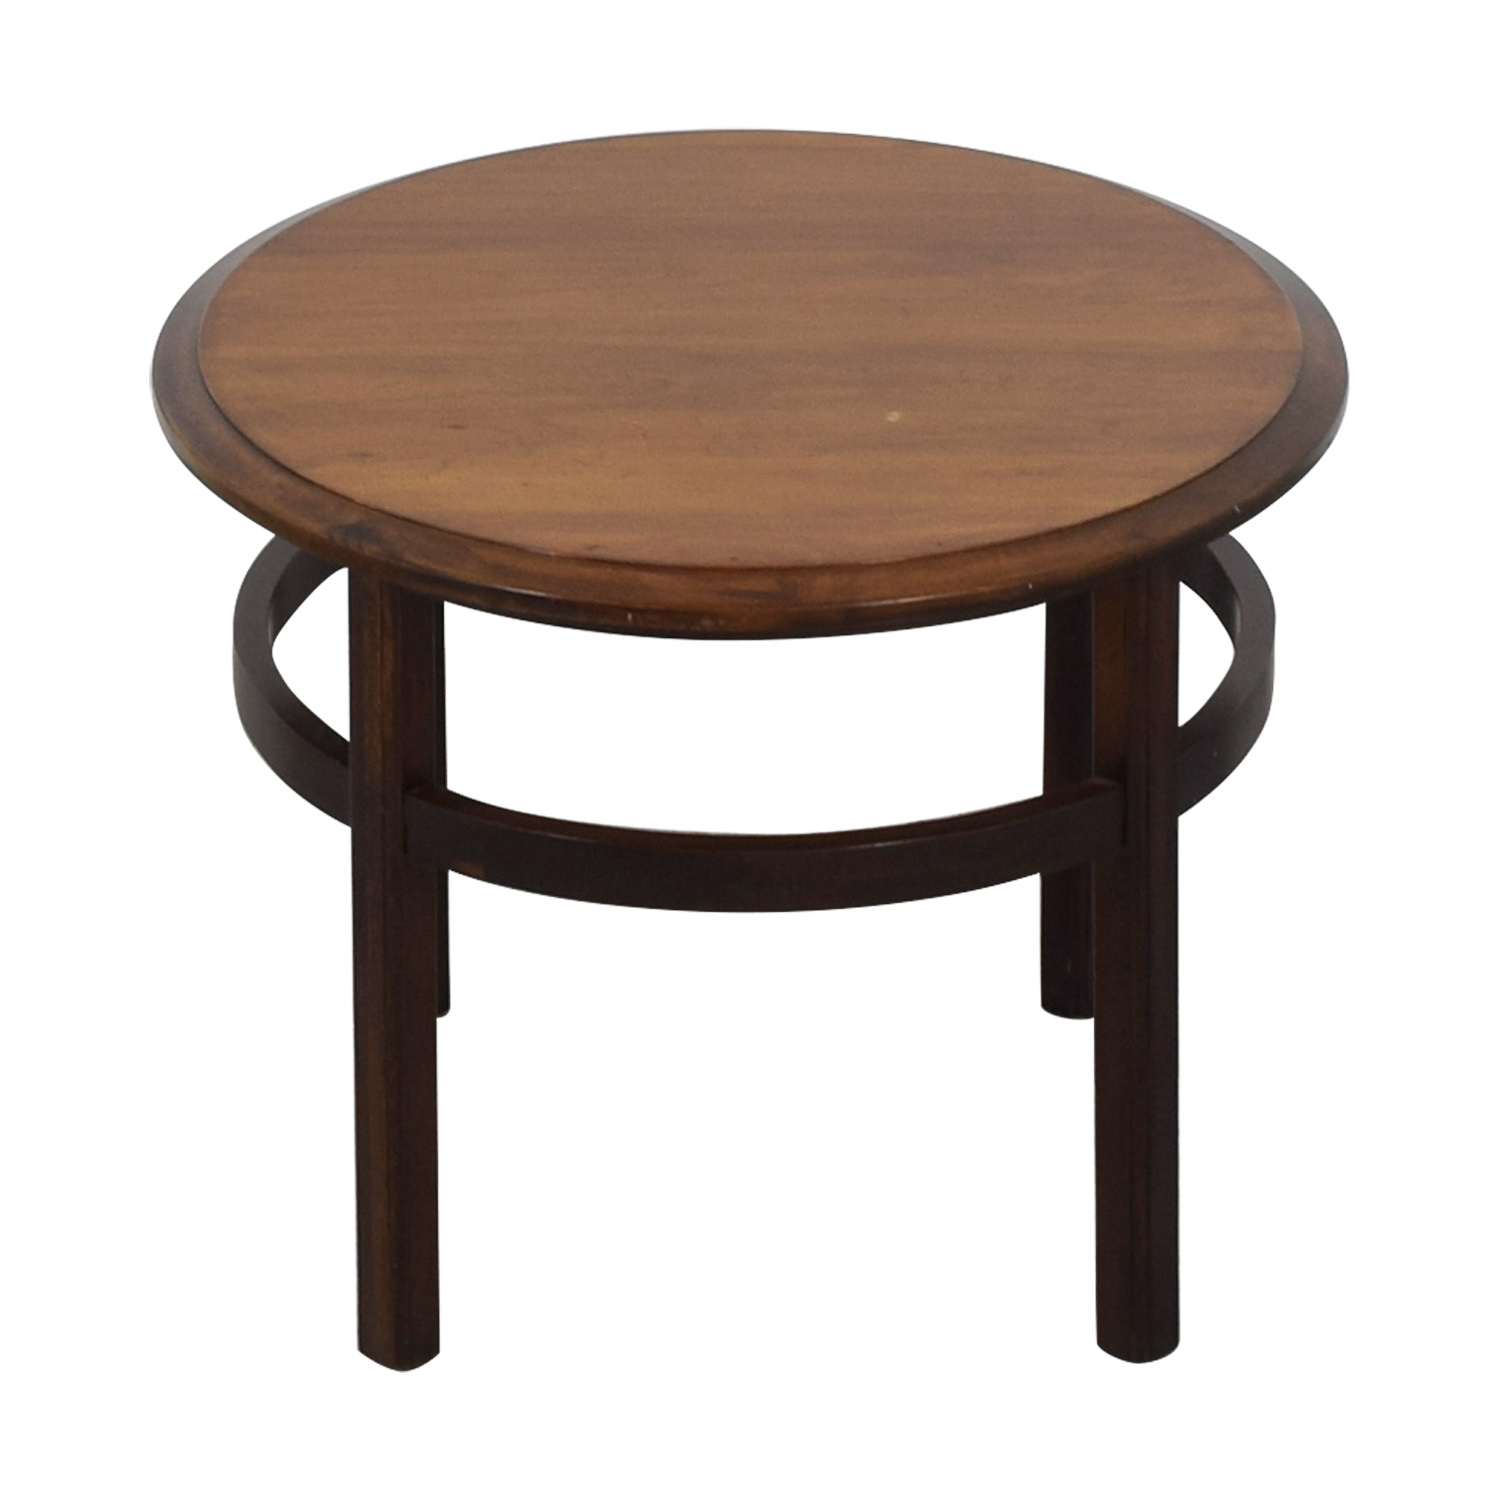 Wayfair Round Accent Table sale